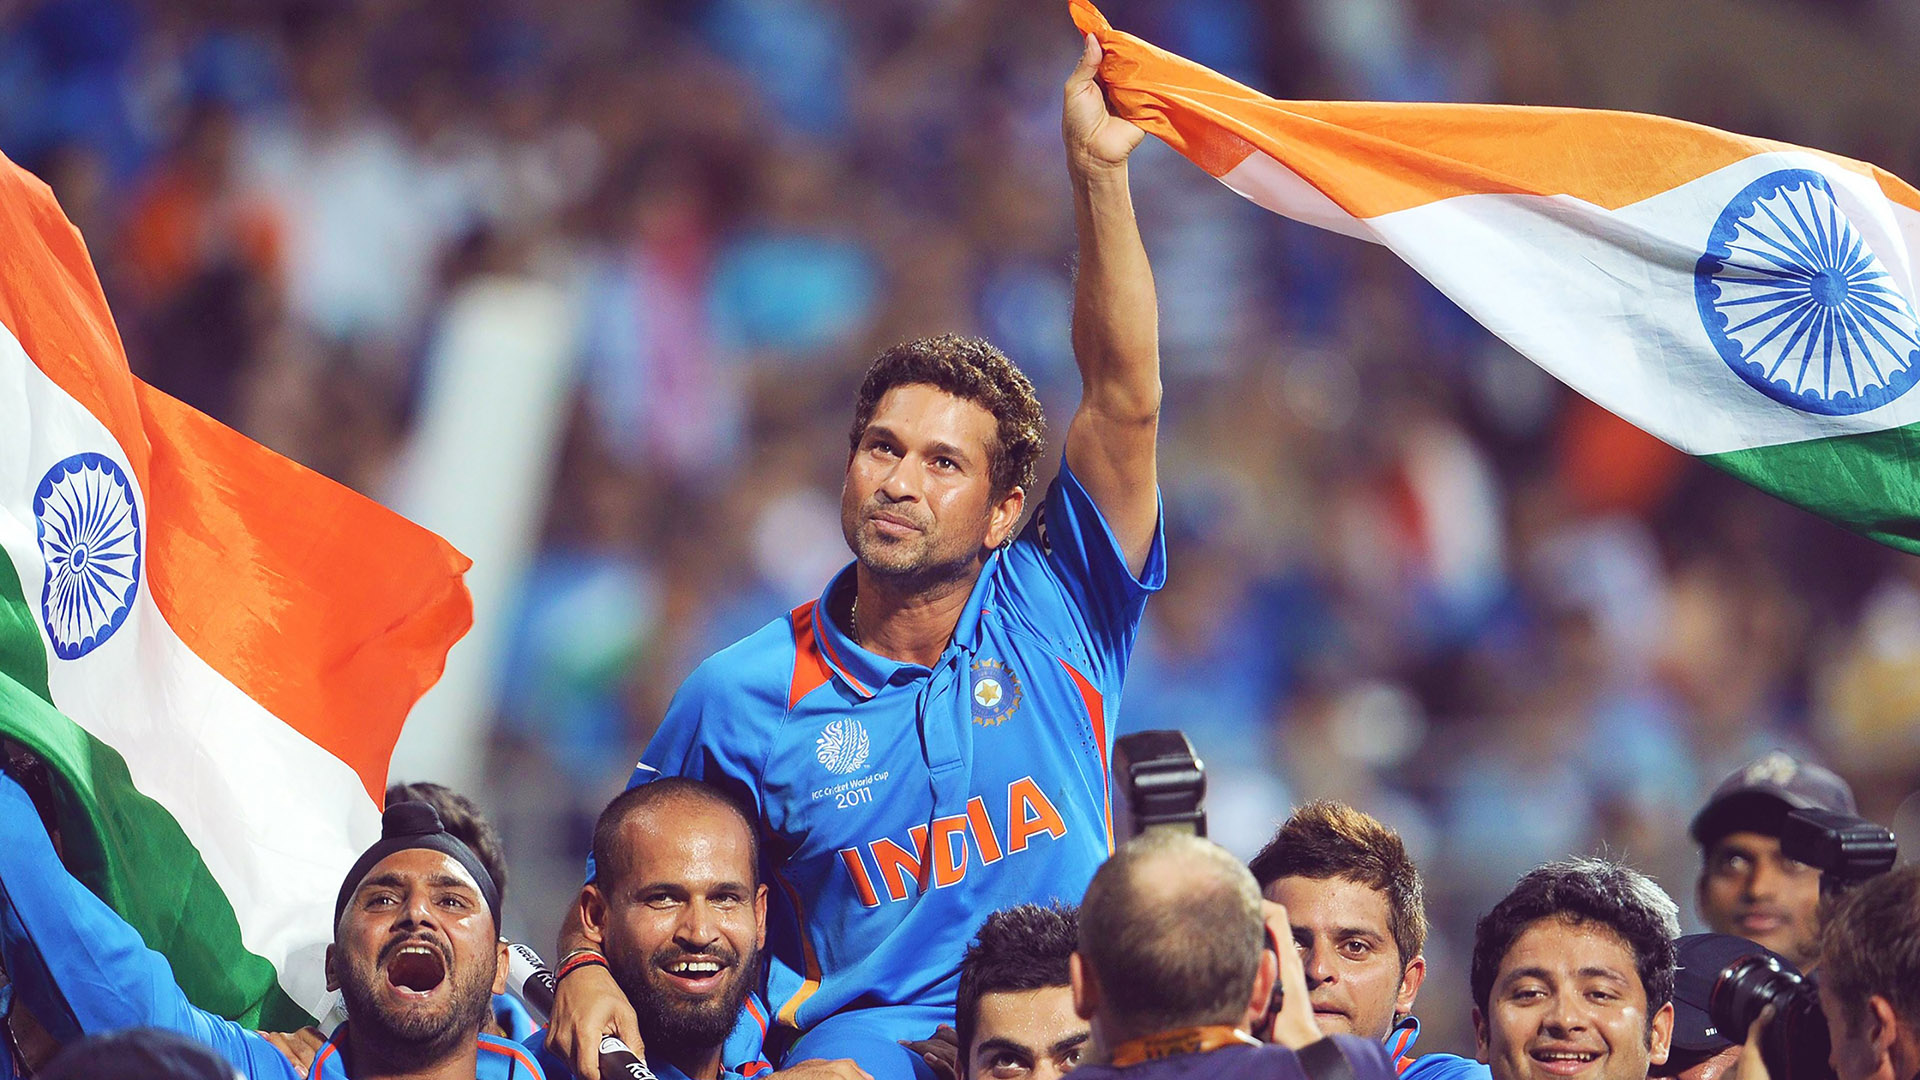 Indian Flag Wallpapers & HD Images – AtulHost Sachin Tendulkar Wallpapers In World Cup 2011